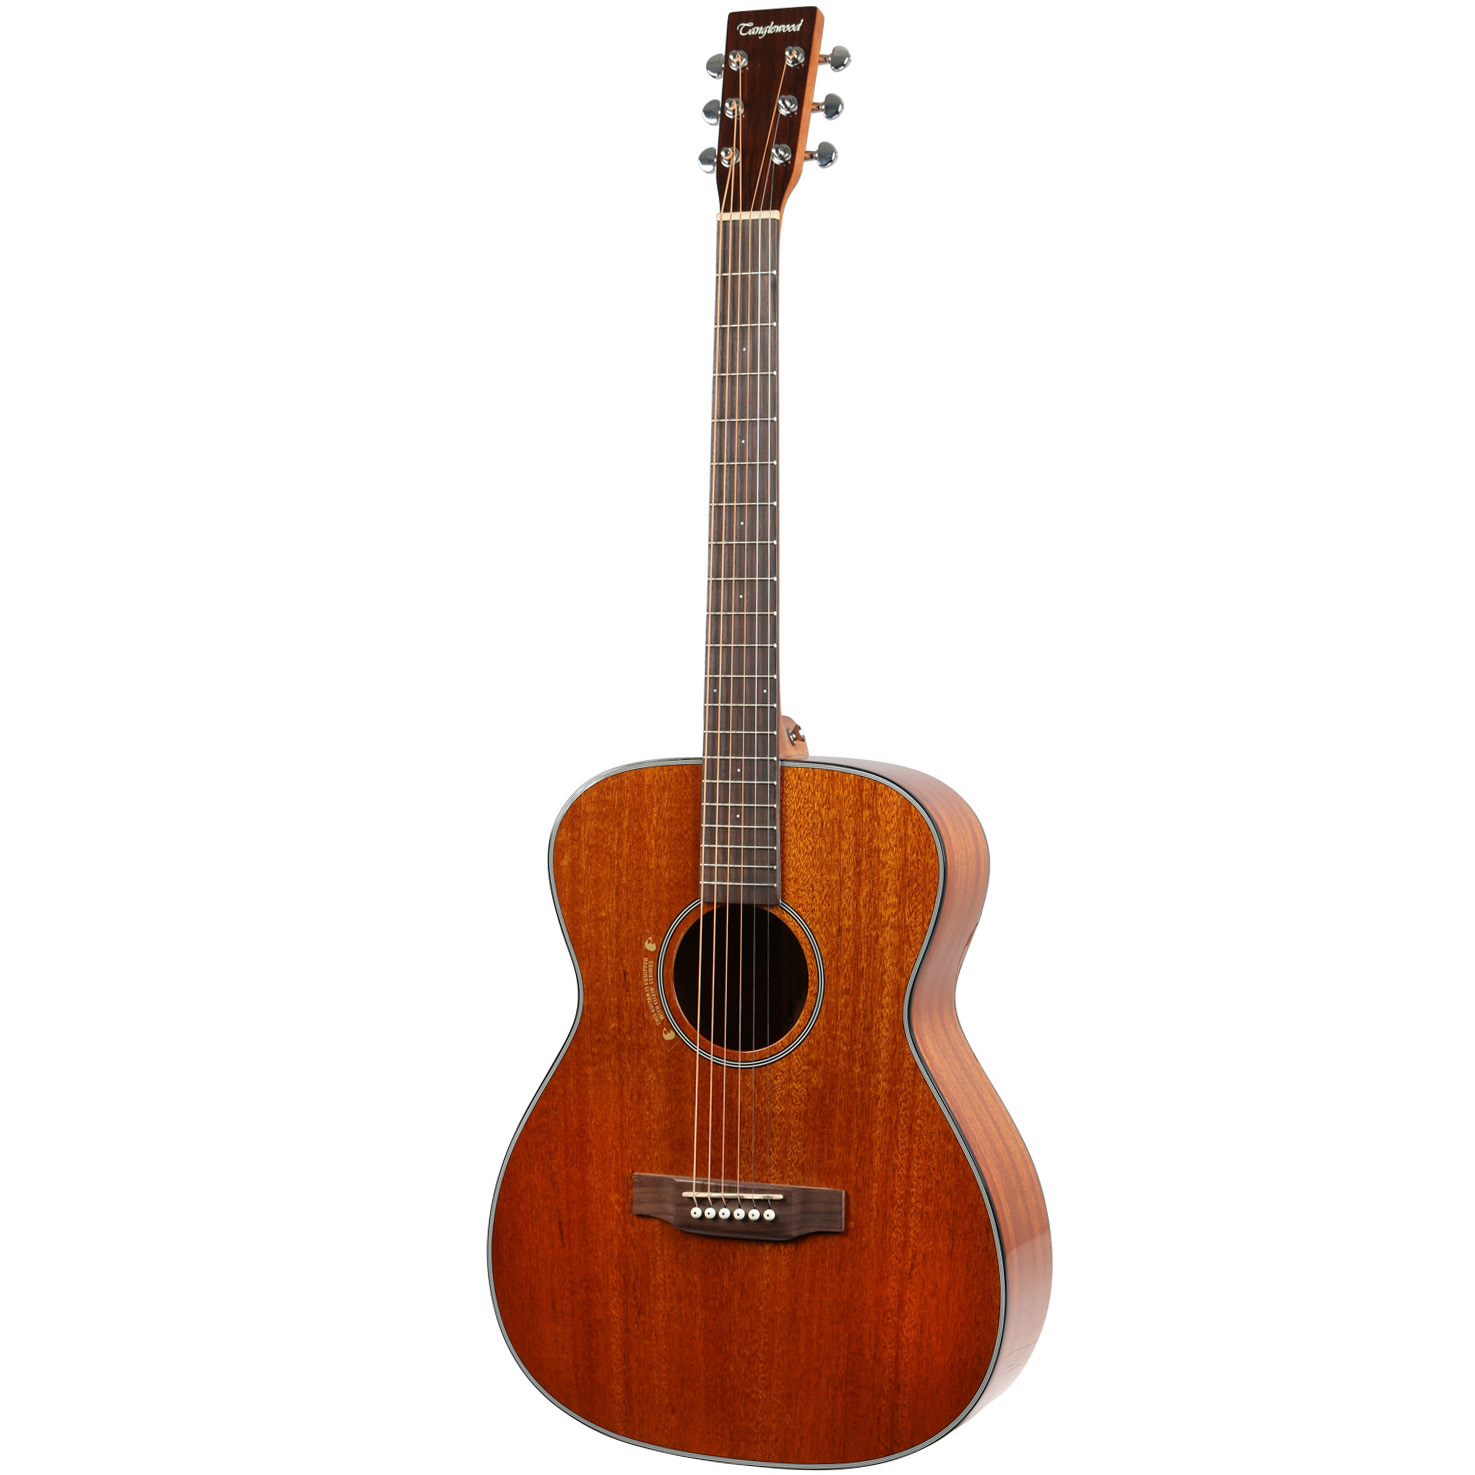 Tanglewood sundance delta historic tw40 od westerngitarre for The tanglewood